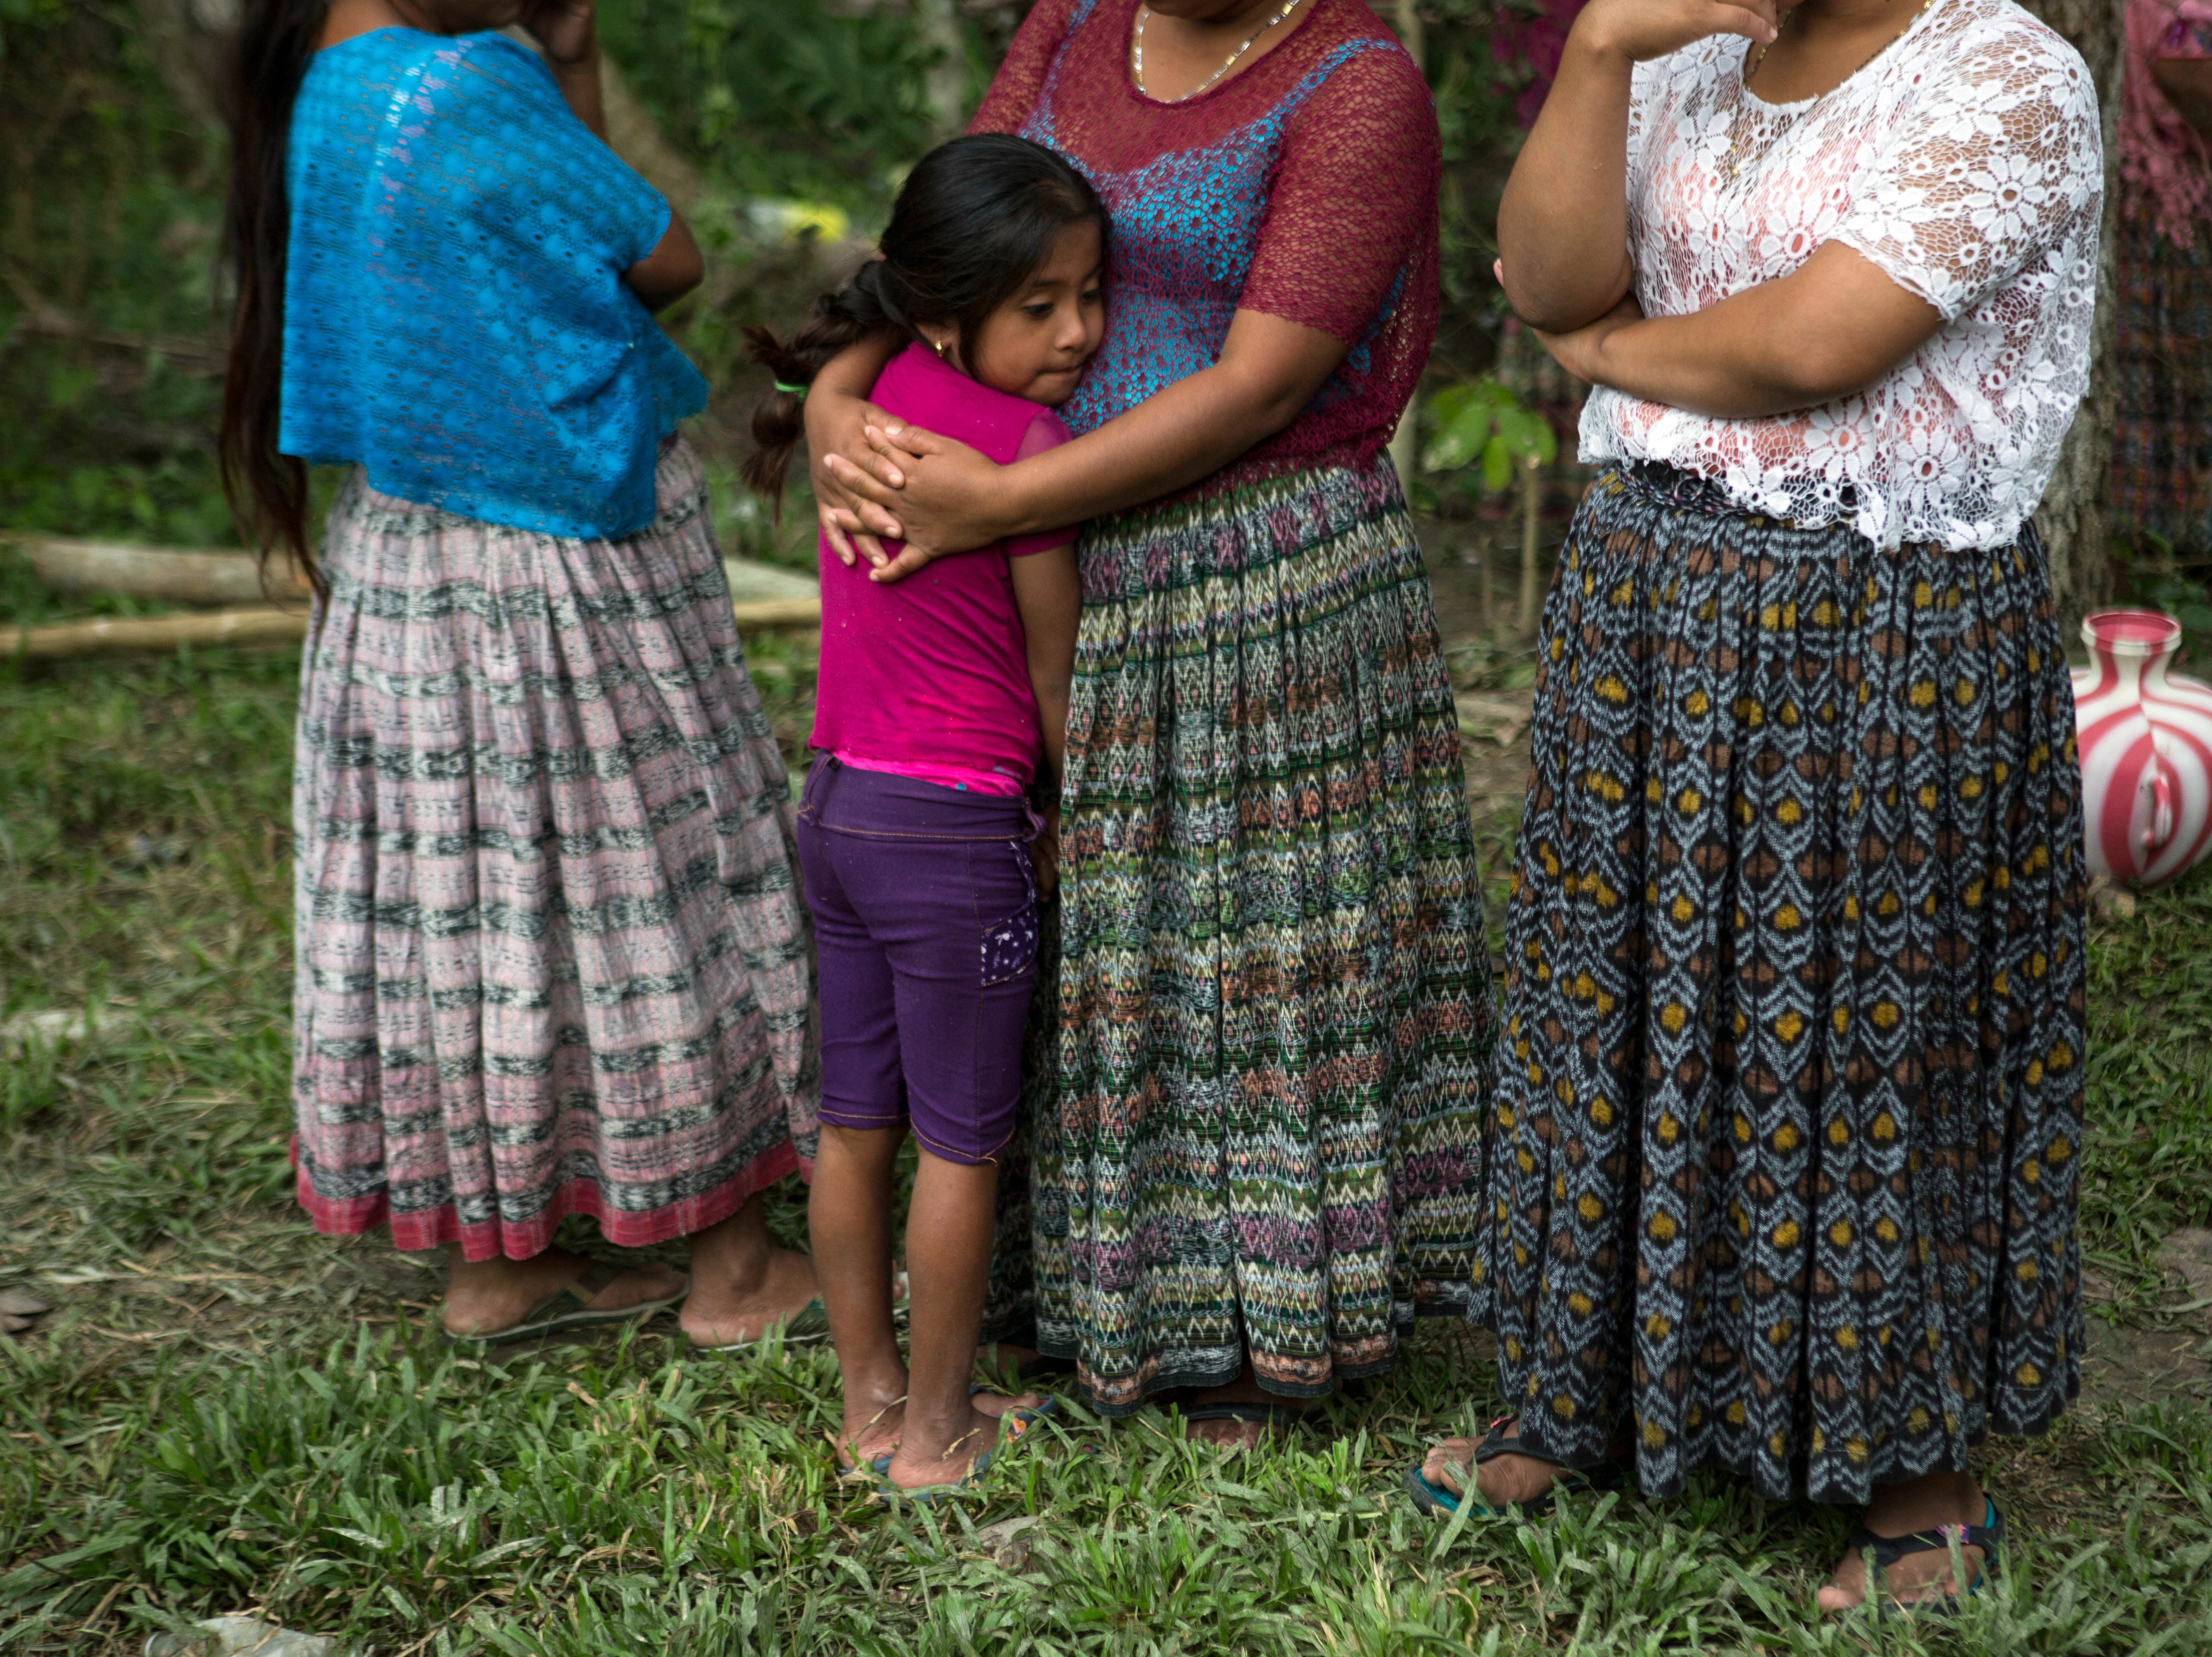 A woman hugs her daughter at Jakelin Caal Maquin's grandfather's house in San Antonio Secortez, Guatemala, Sunday, Dec. 23, 2018. The body of Caal Maquin, 7, who died while in custody of the U.S. Border Patrol, arrived in her native Guatemala on Sunday and was being driven hours into the countryside to be handed over to family members for a last goodbye.